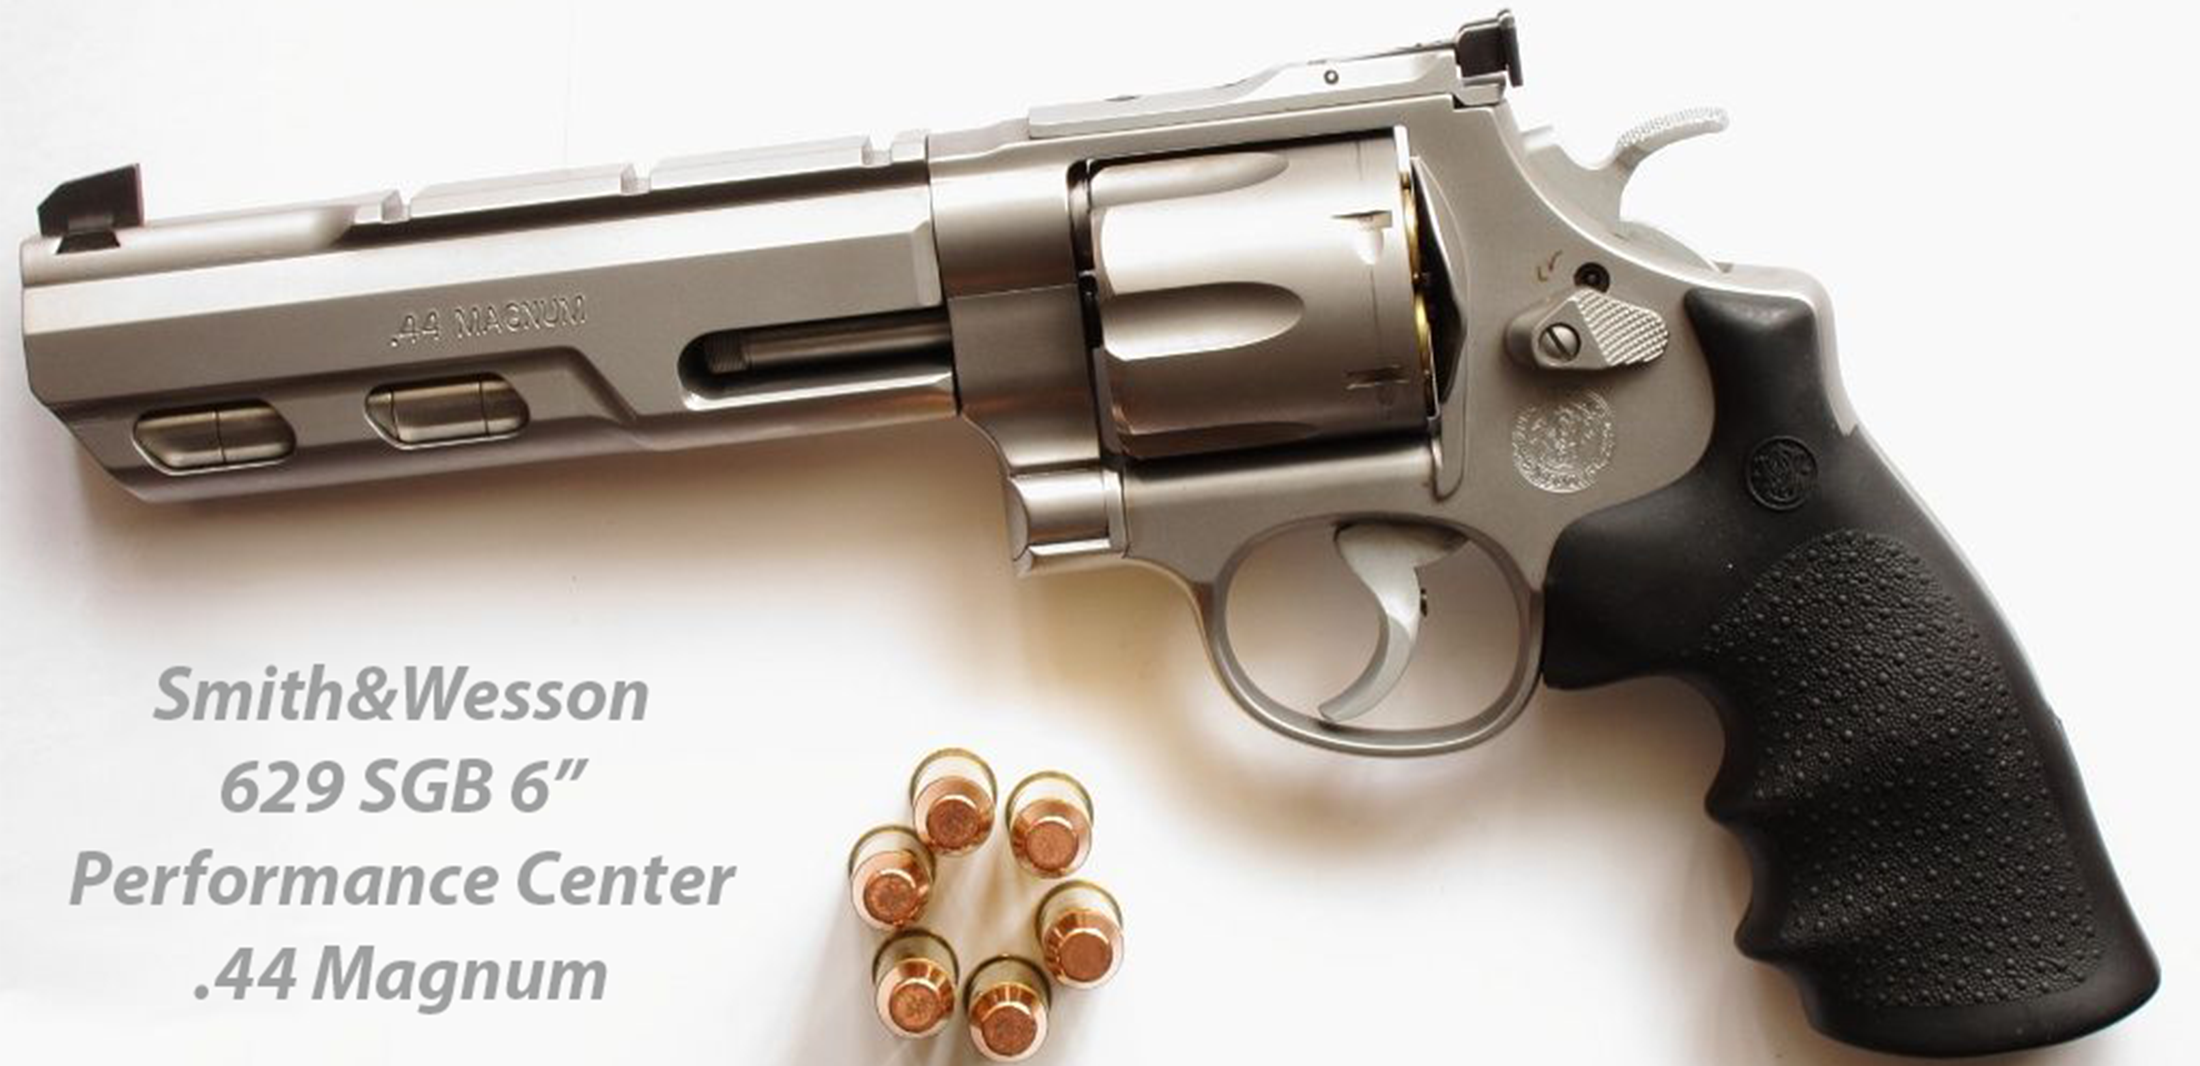 Револвер Smith&Wesson 629 SGB Performance Center 44 Magnum